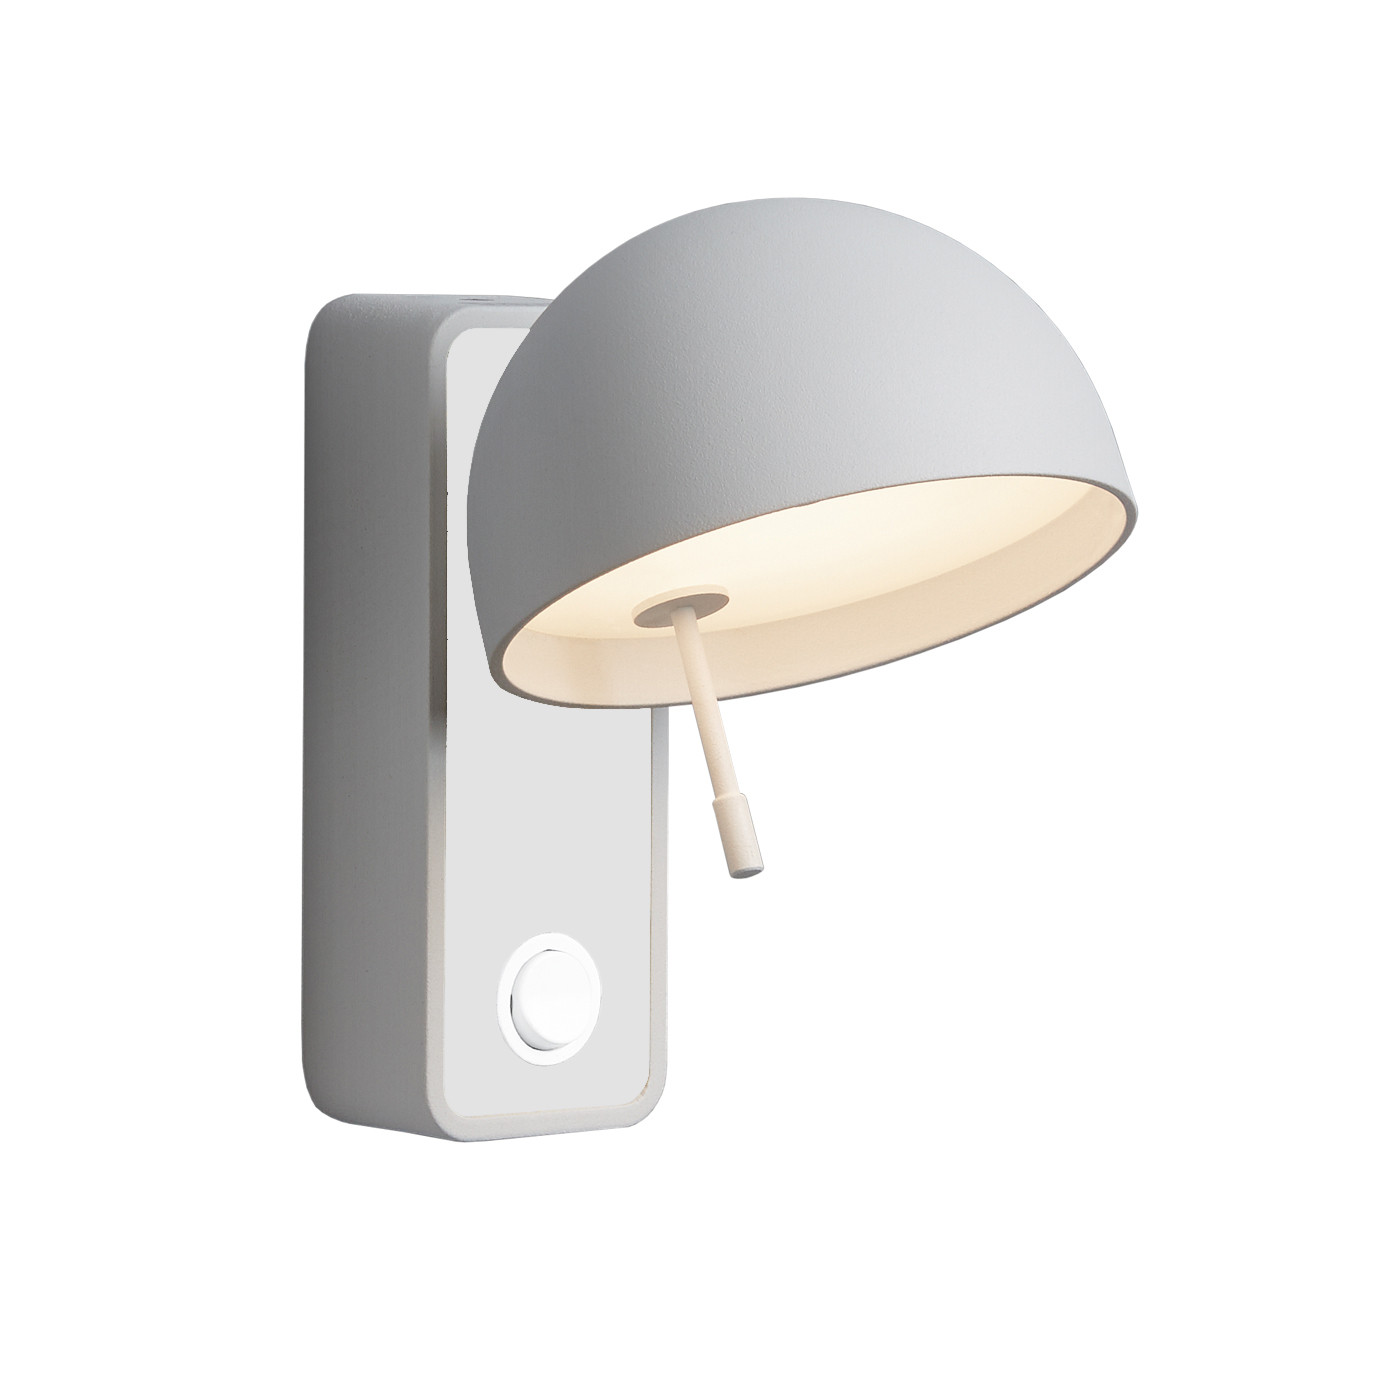 Bover Beddy A/01 LED